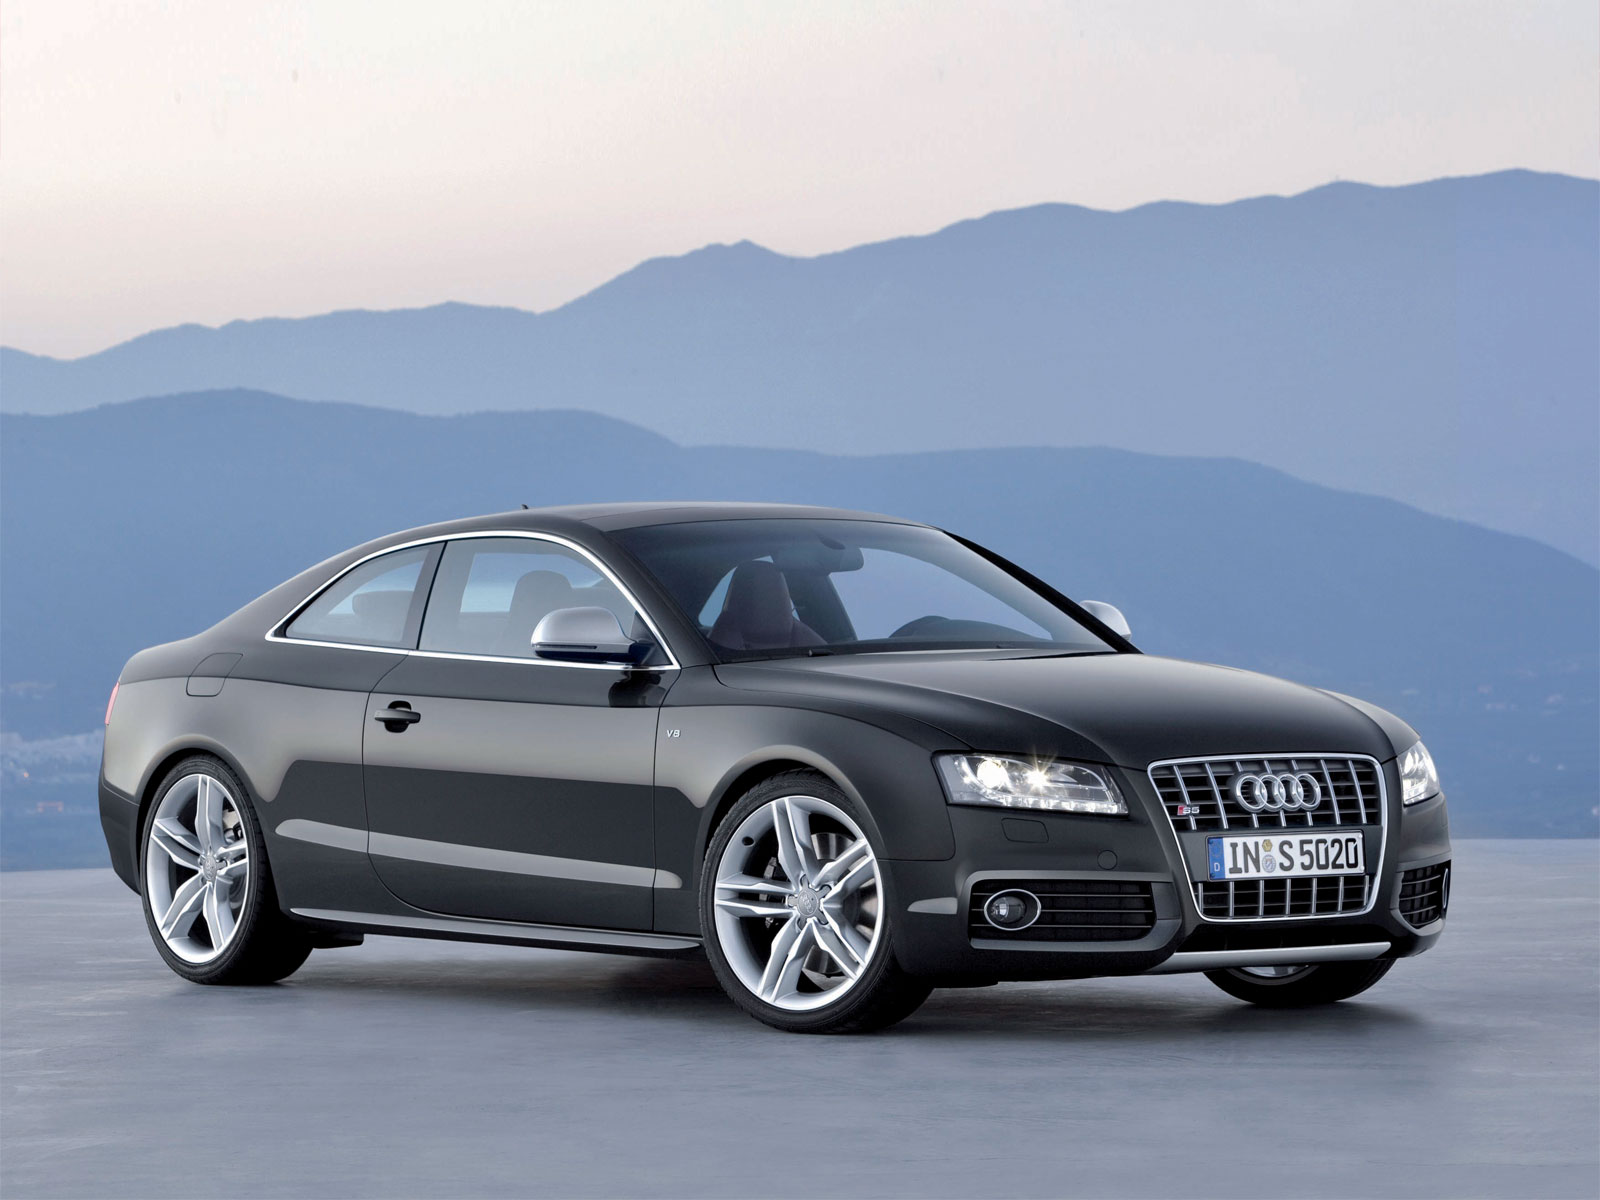 Audi S5 Wallpaper 5332 Hd Wallpapers in Cars   Imagescicom 1600x1200